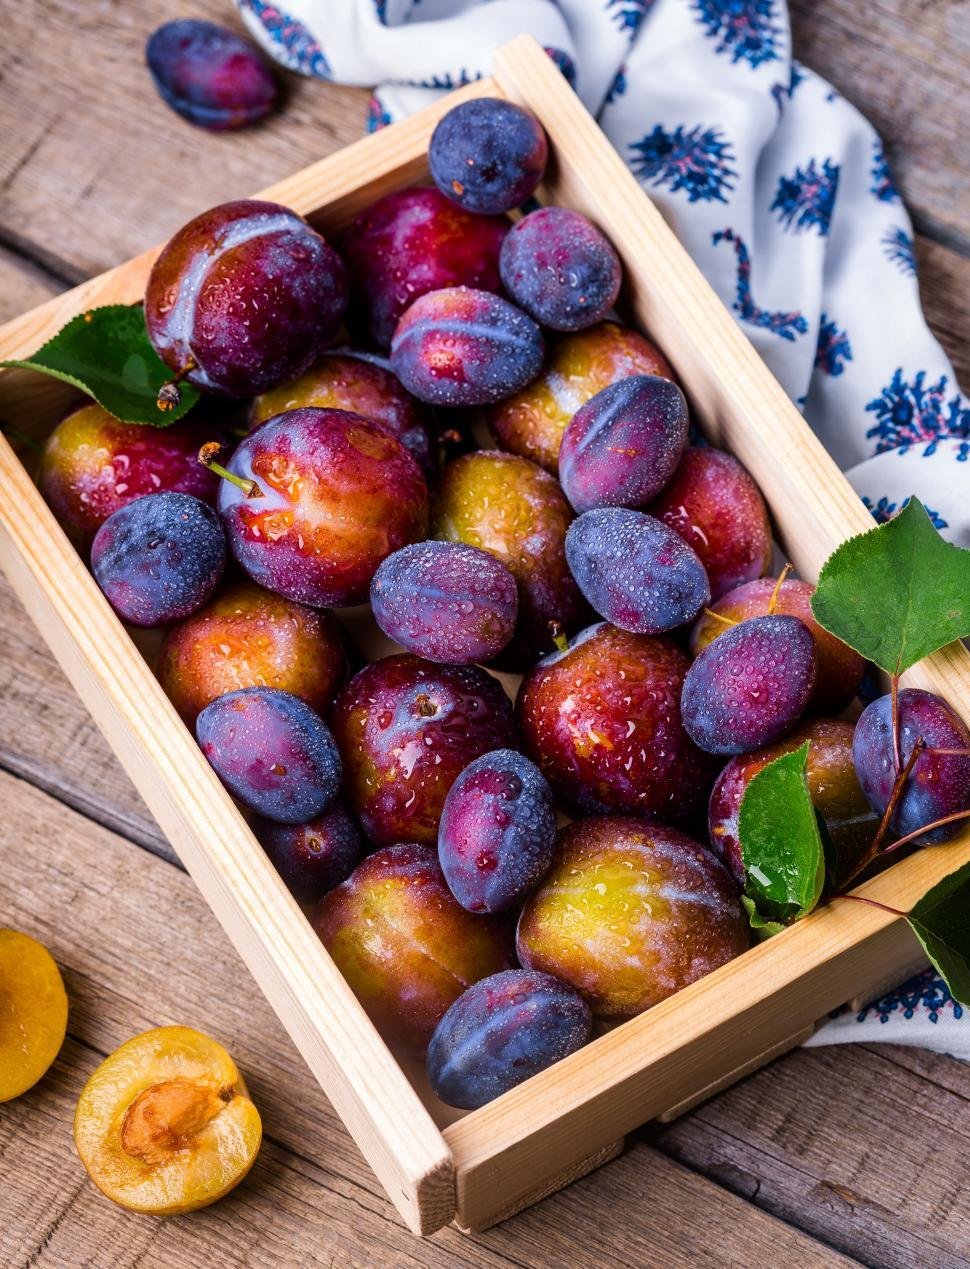 Download Free Stock HD Photo of Overhead view of a crate of plums Online